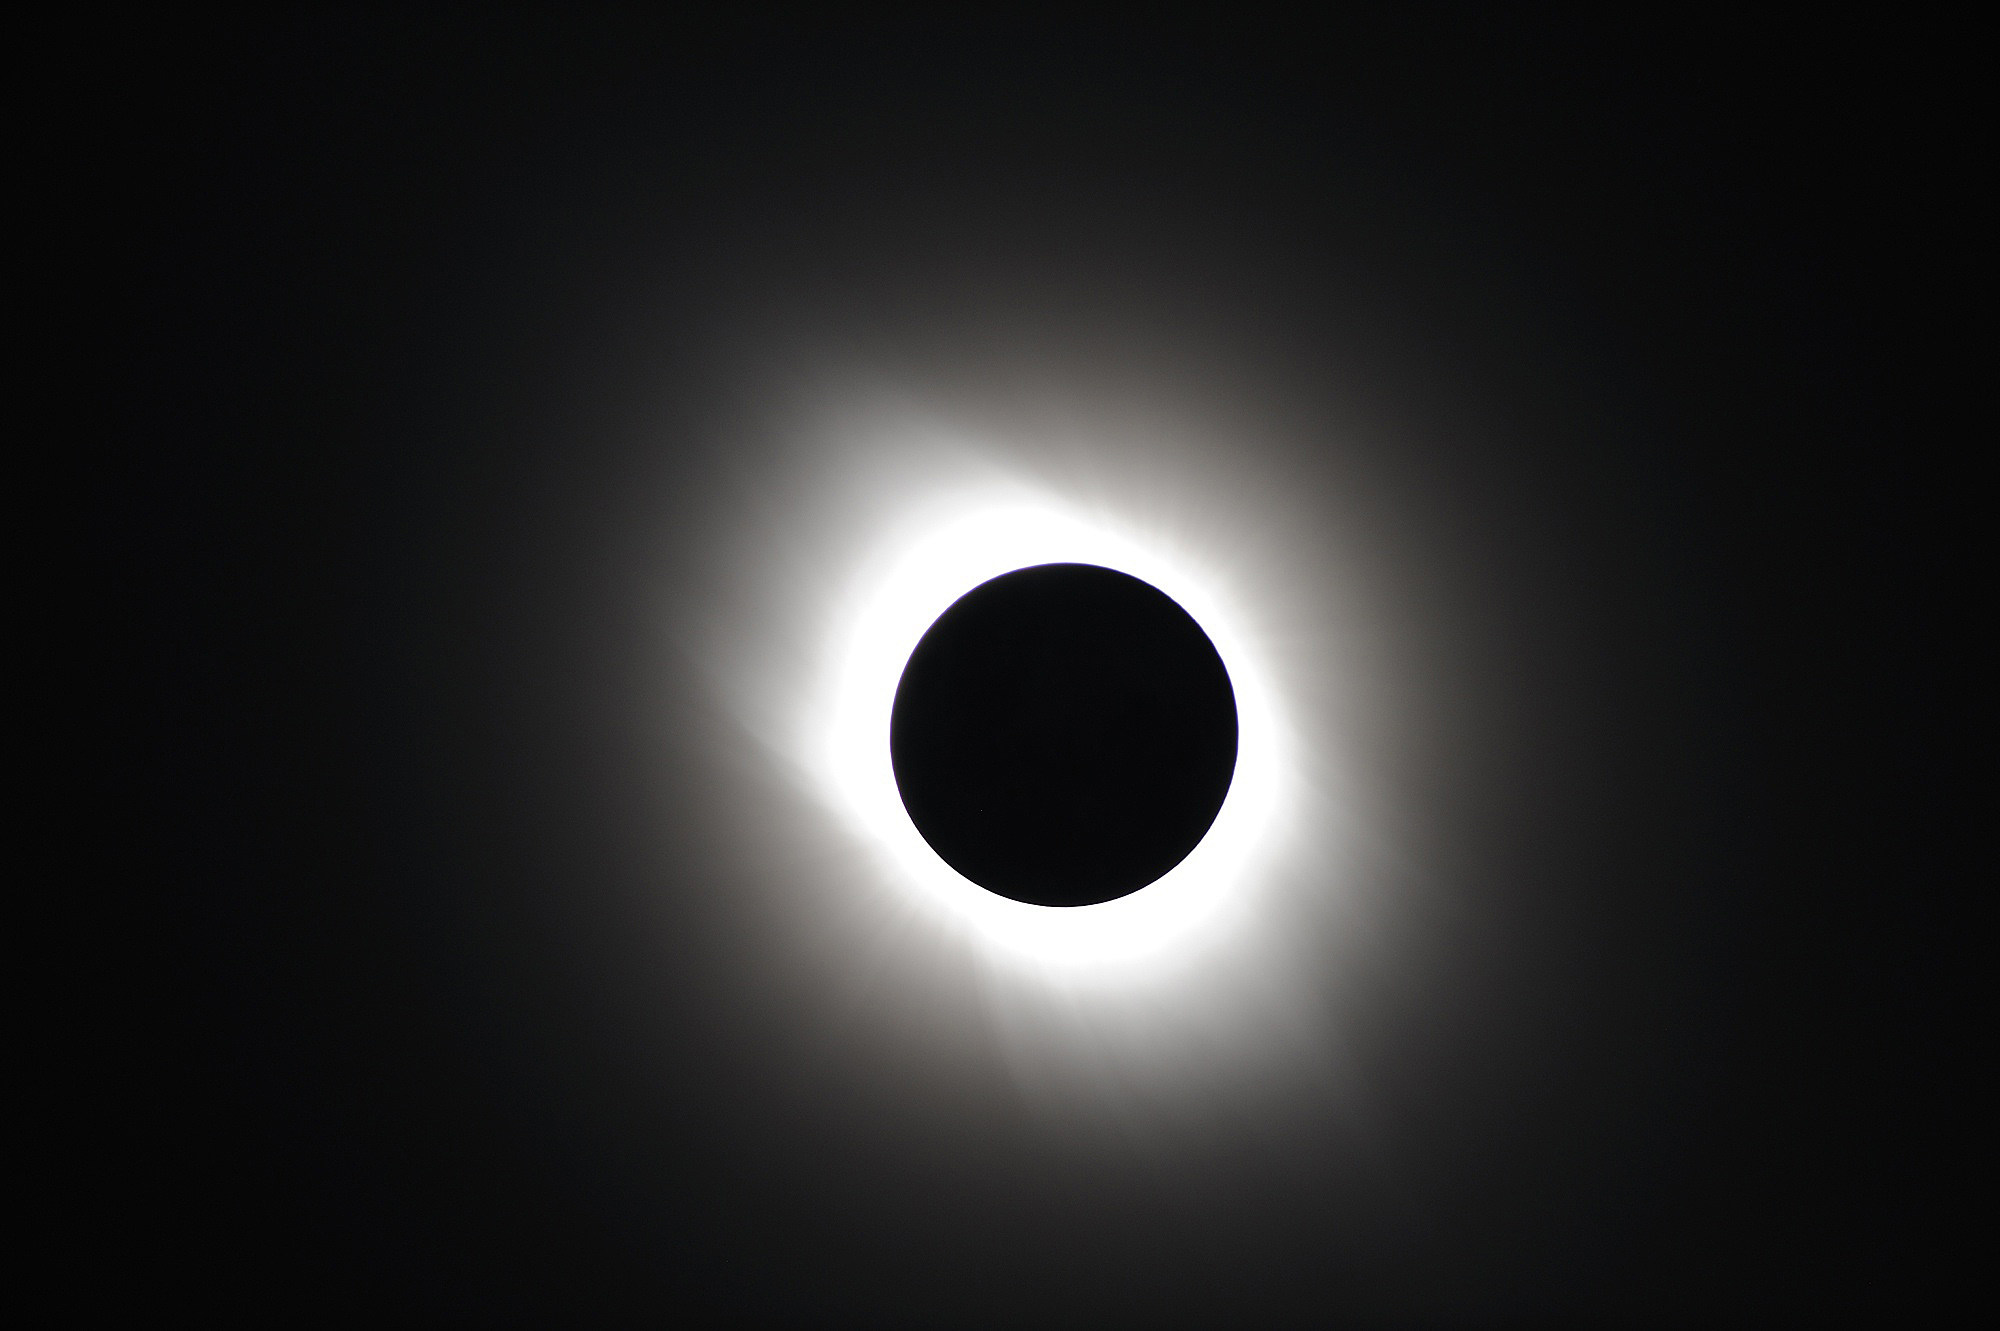 Here Is Your Last Minute \u0027Total Solar Eclipse For Dummies\u0027 Cheat Sheet